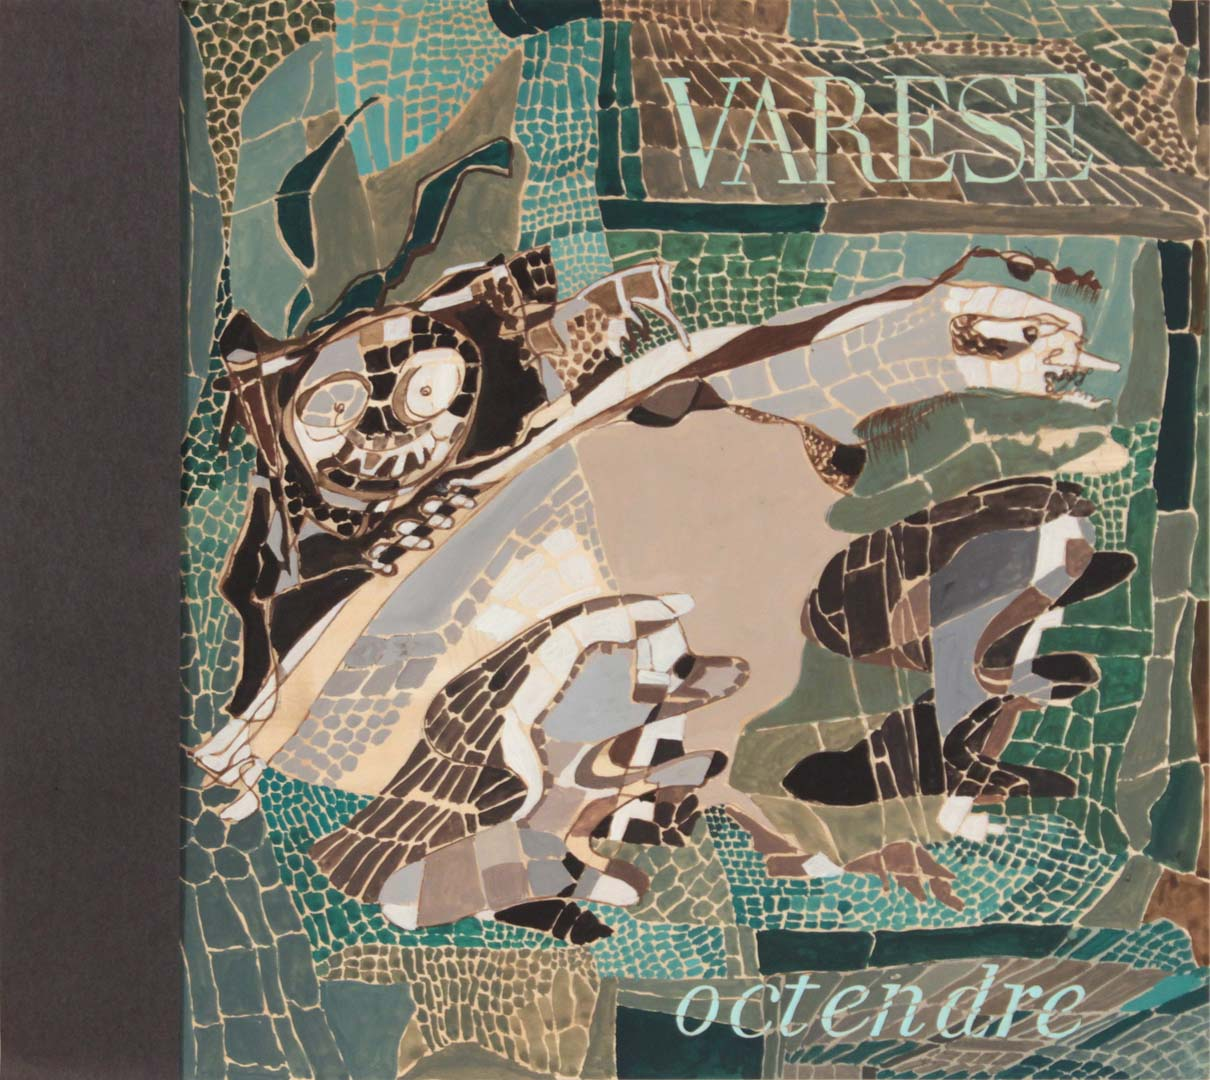 1949 Varese Octendre (or Themes from Alban Berg) Tempera on Paper 12.50 x 14